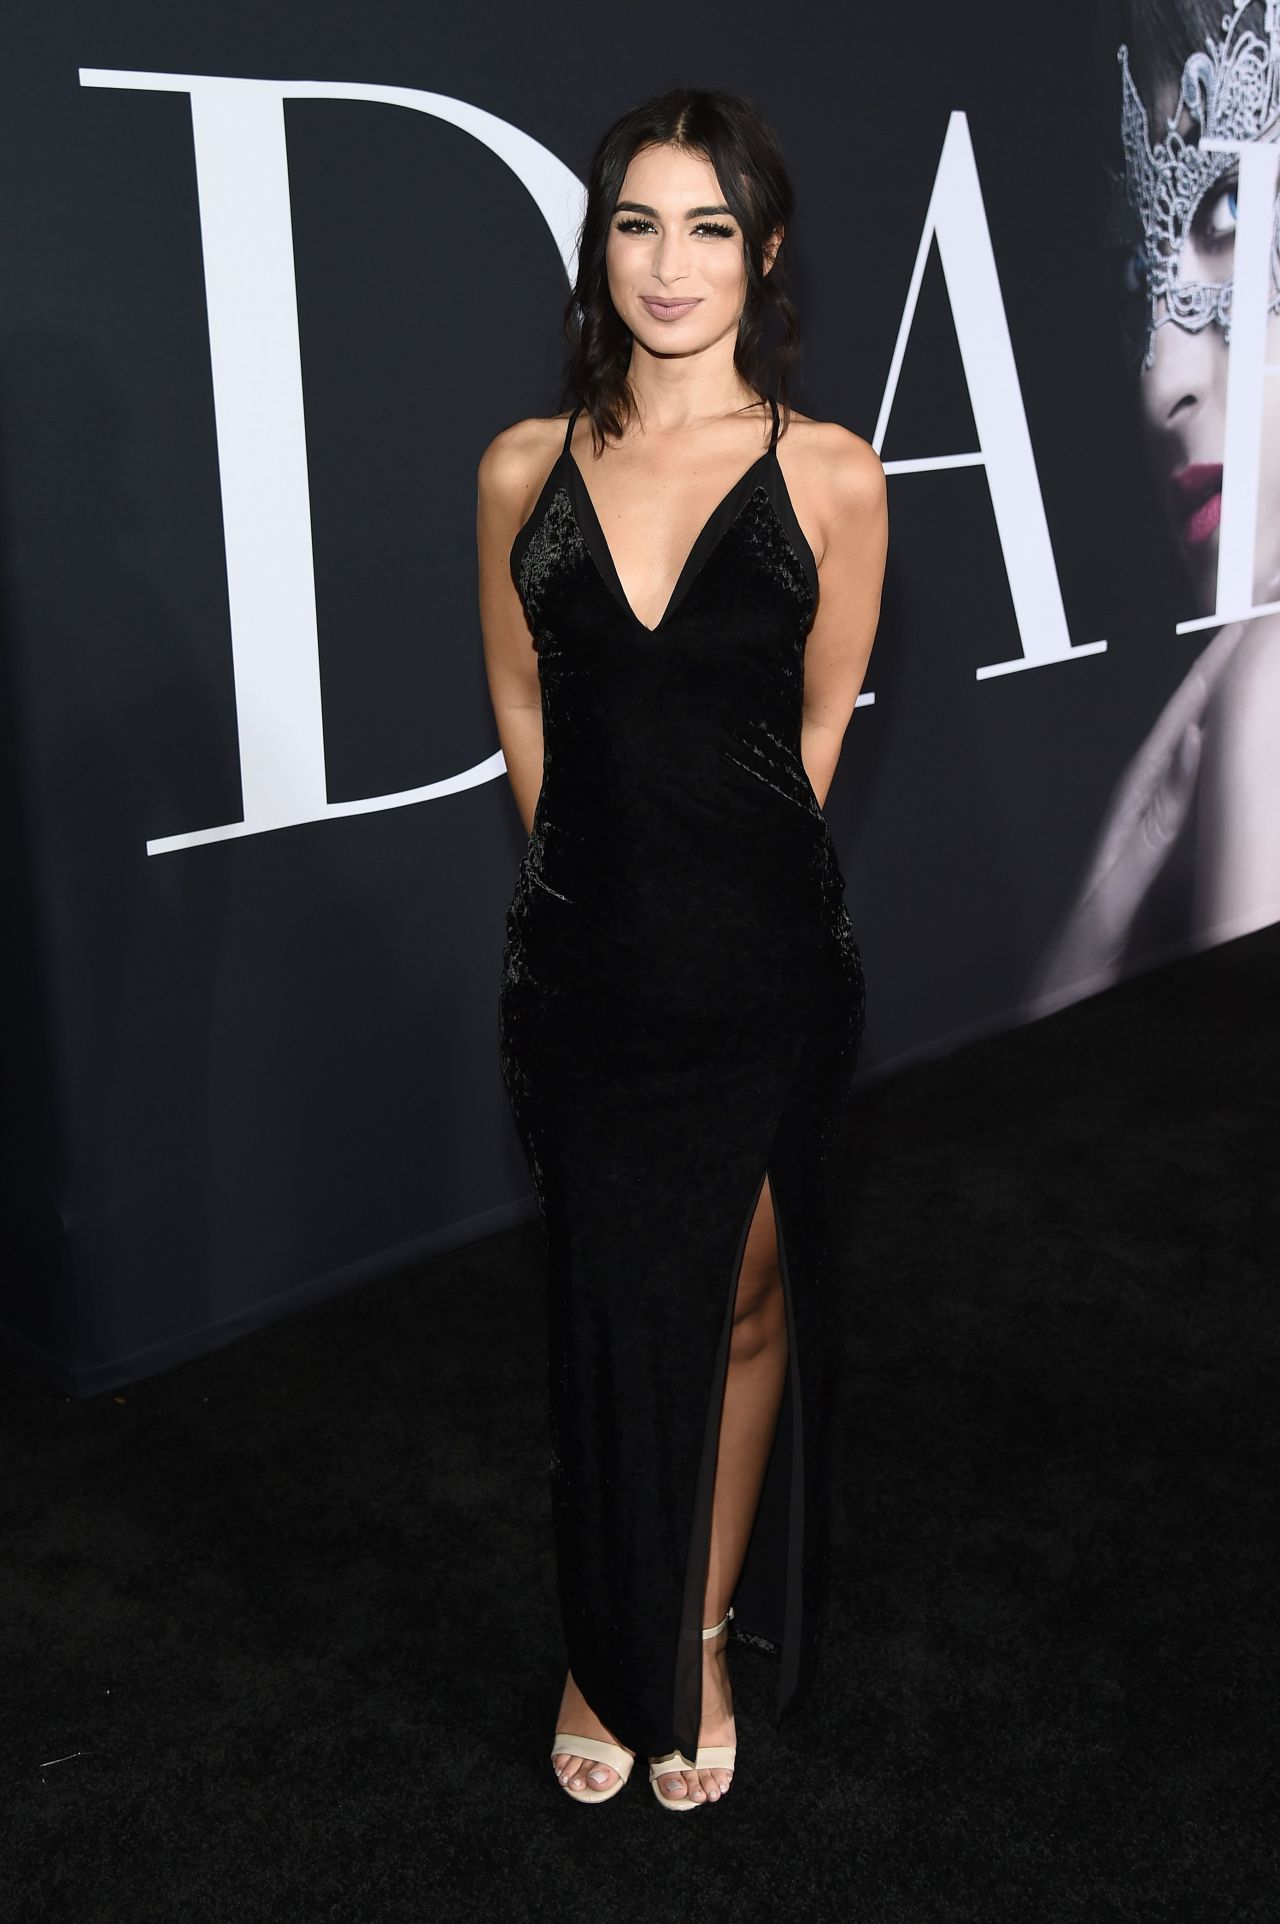 Ashley iaconetti fifty shades darker premiere in los angeles naked (37 pics)